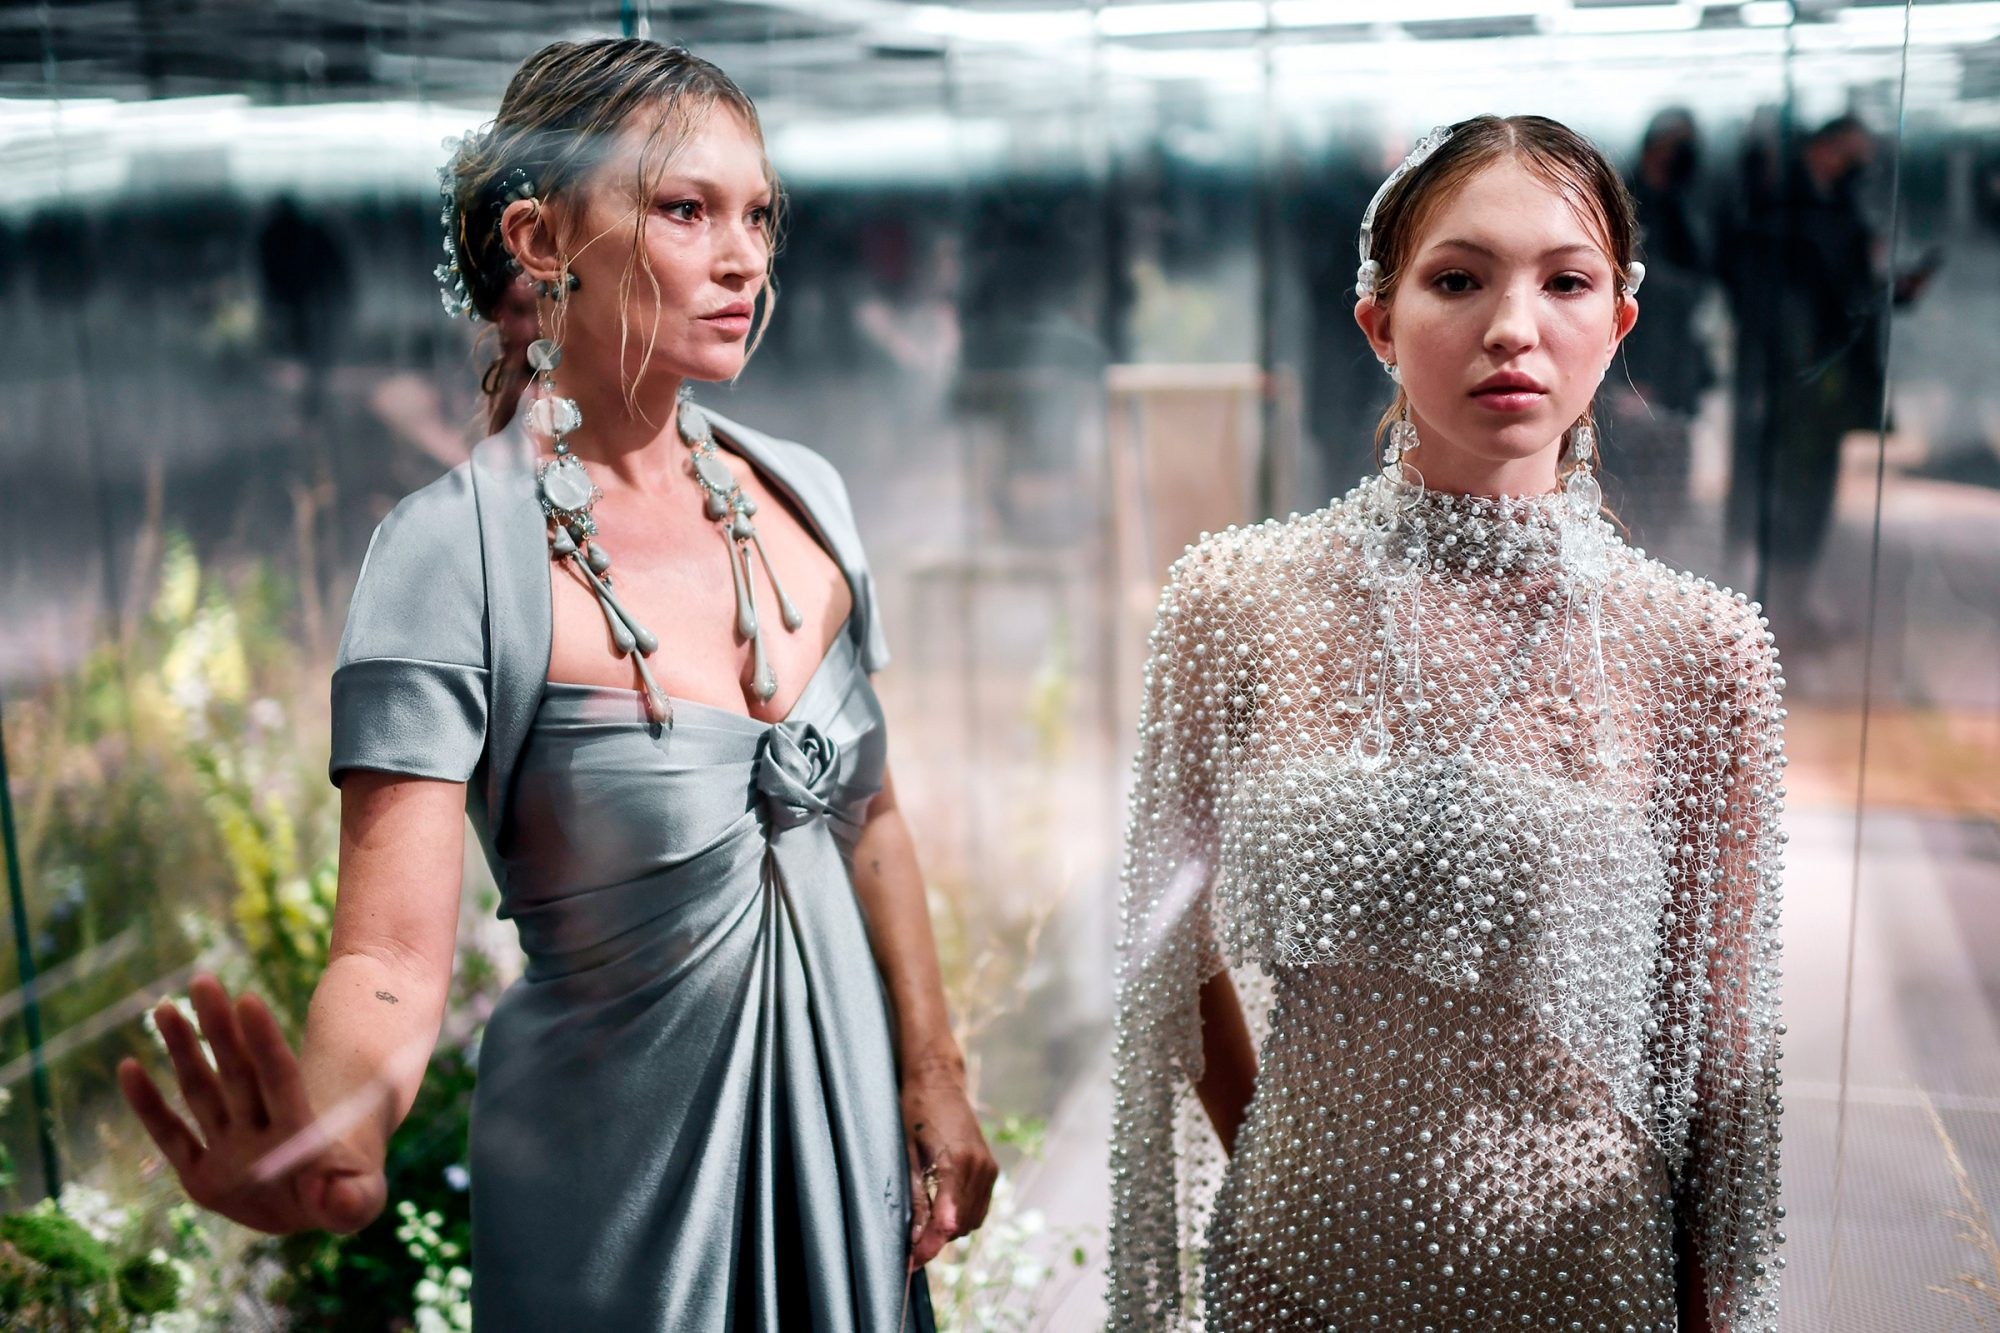 British model Kate Moss (L) and her daughter British model Lila Grace Moss-Hack present creations by British designer Kim Jones for the Fendi's Spring-Summer 2021 collection during the Paris Haute Couture Fashion Week in Paris, on January 27, 2021